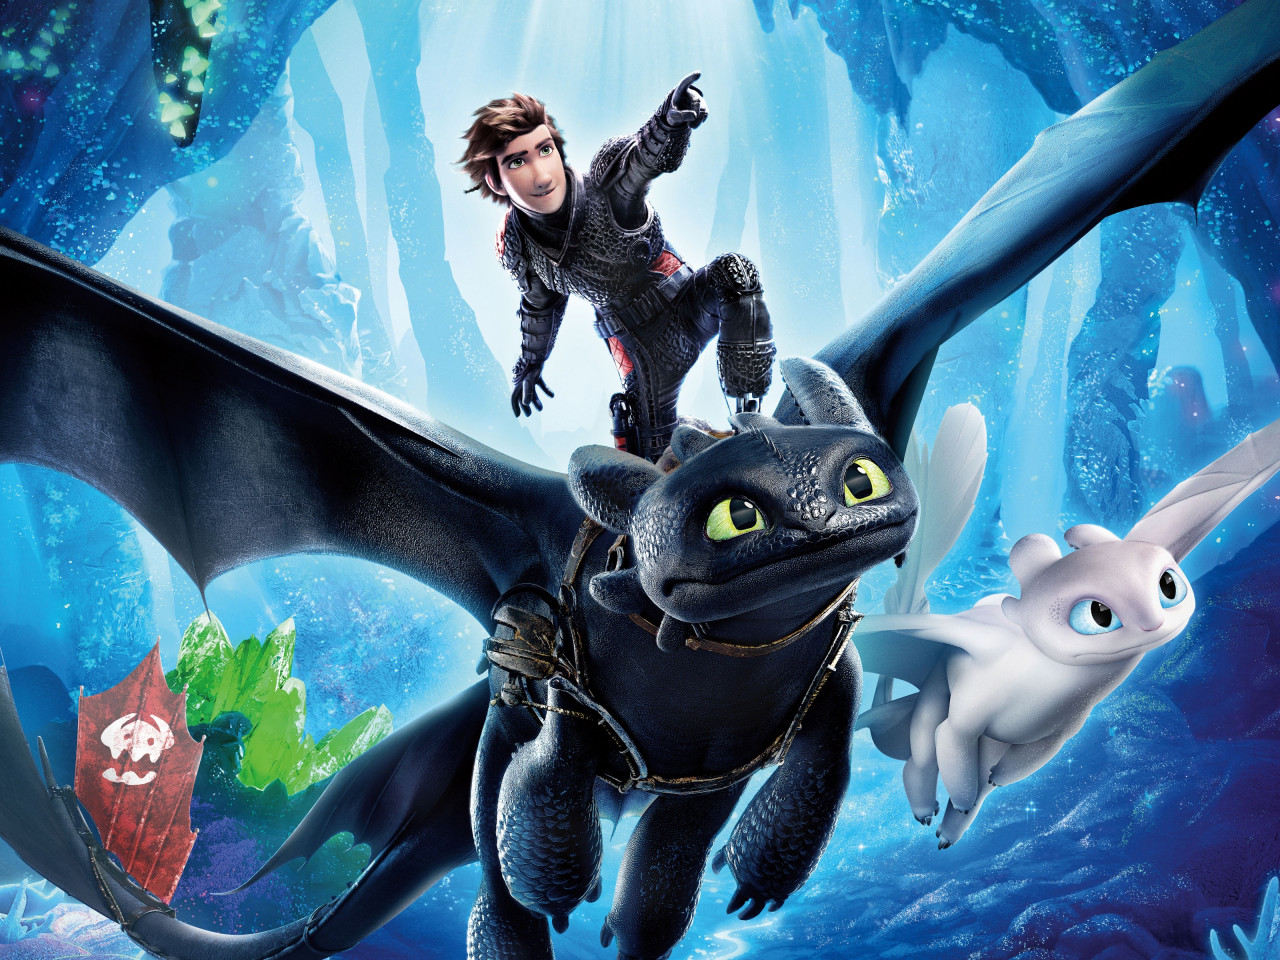 How to Train Your Dragon 2019 wallpaper 1280x960